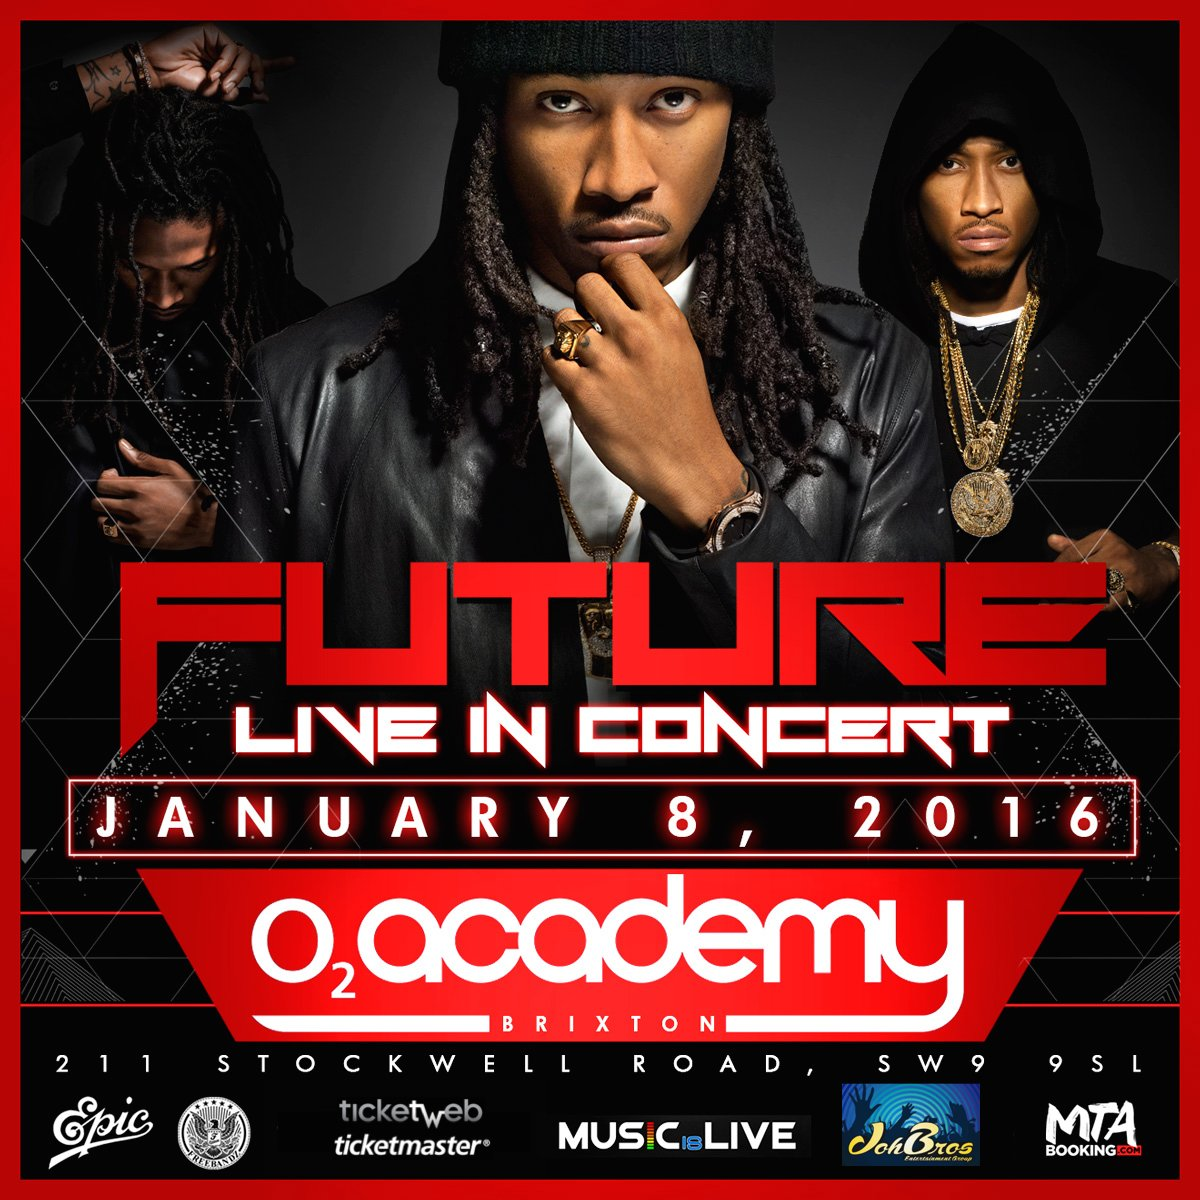 FUTURE ANNOUNCES 2 EUROPEAN CONCERTS: JAN 8 IN LONDON AND JAN 9 IN AMSTERDAM TIX AVAIL NOV 6 https://t.co/HgmwtgV0dV https://t.co/0YFCvBIZK9